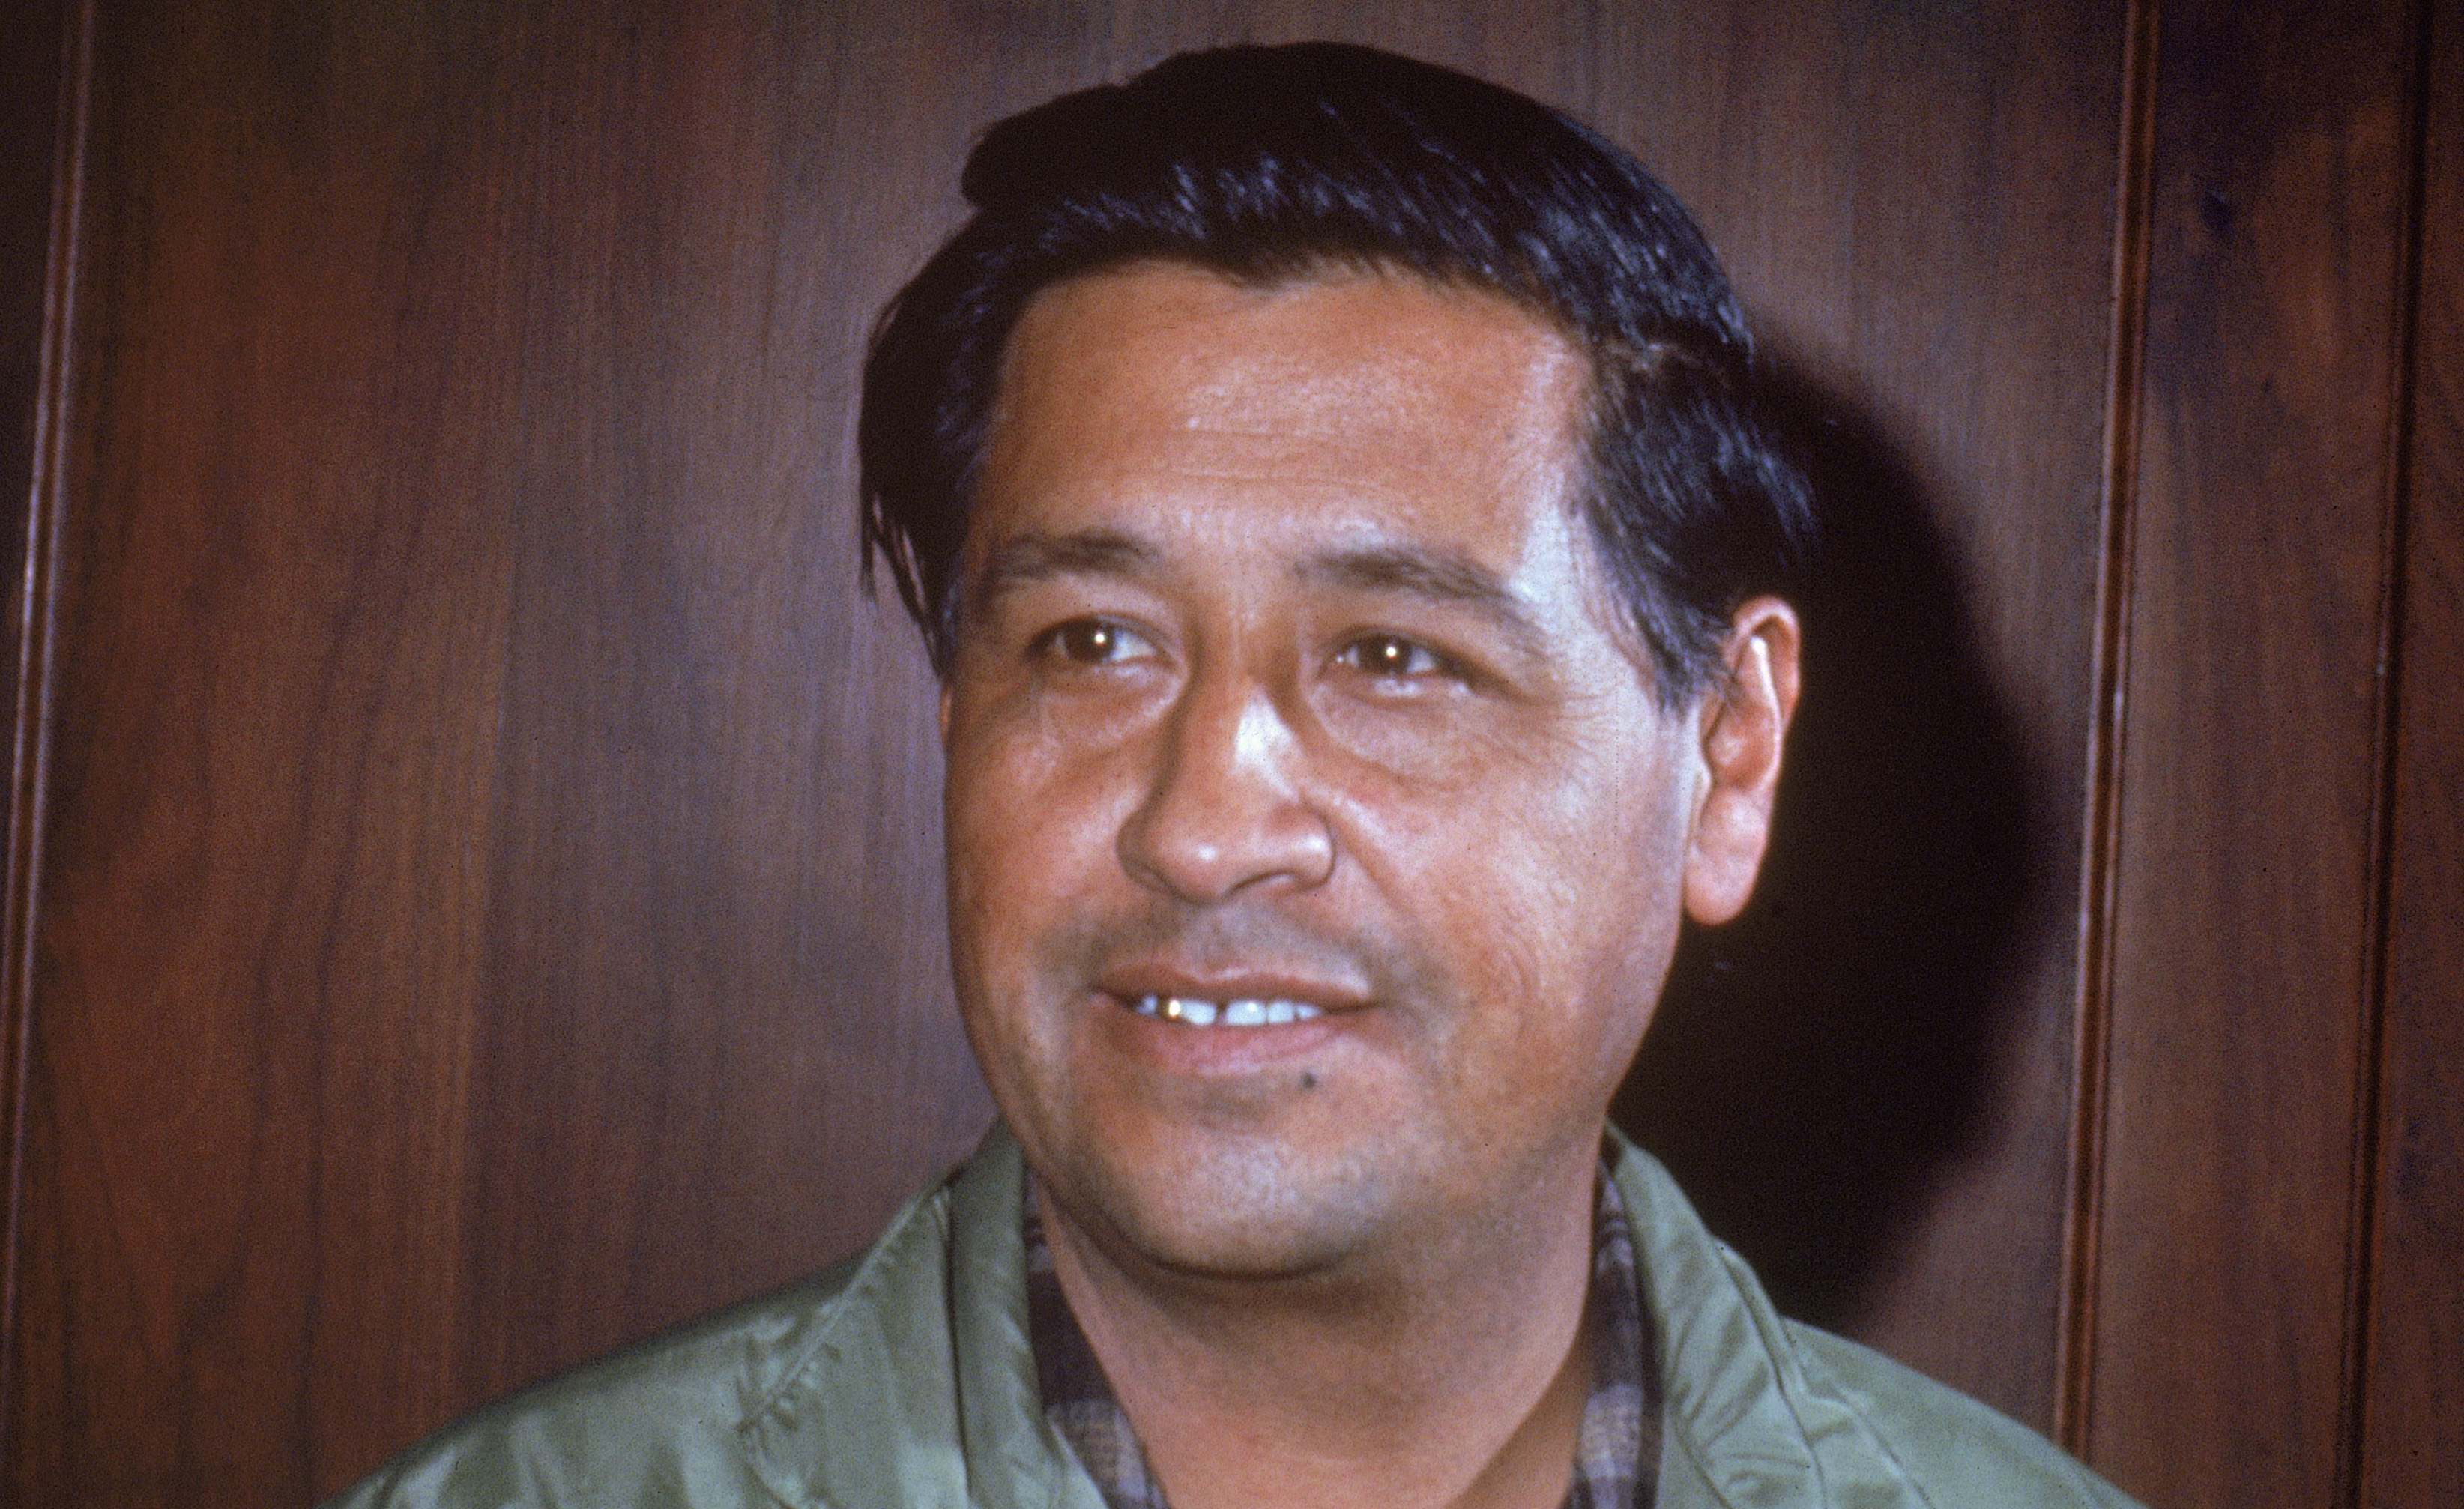 7 Powerful Cesar Chávez Quotes That Speak to the Struggle Our Community Faces Today